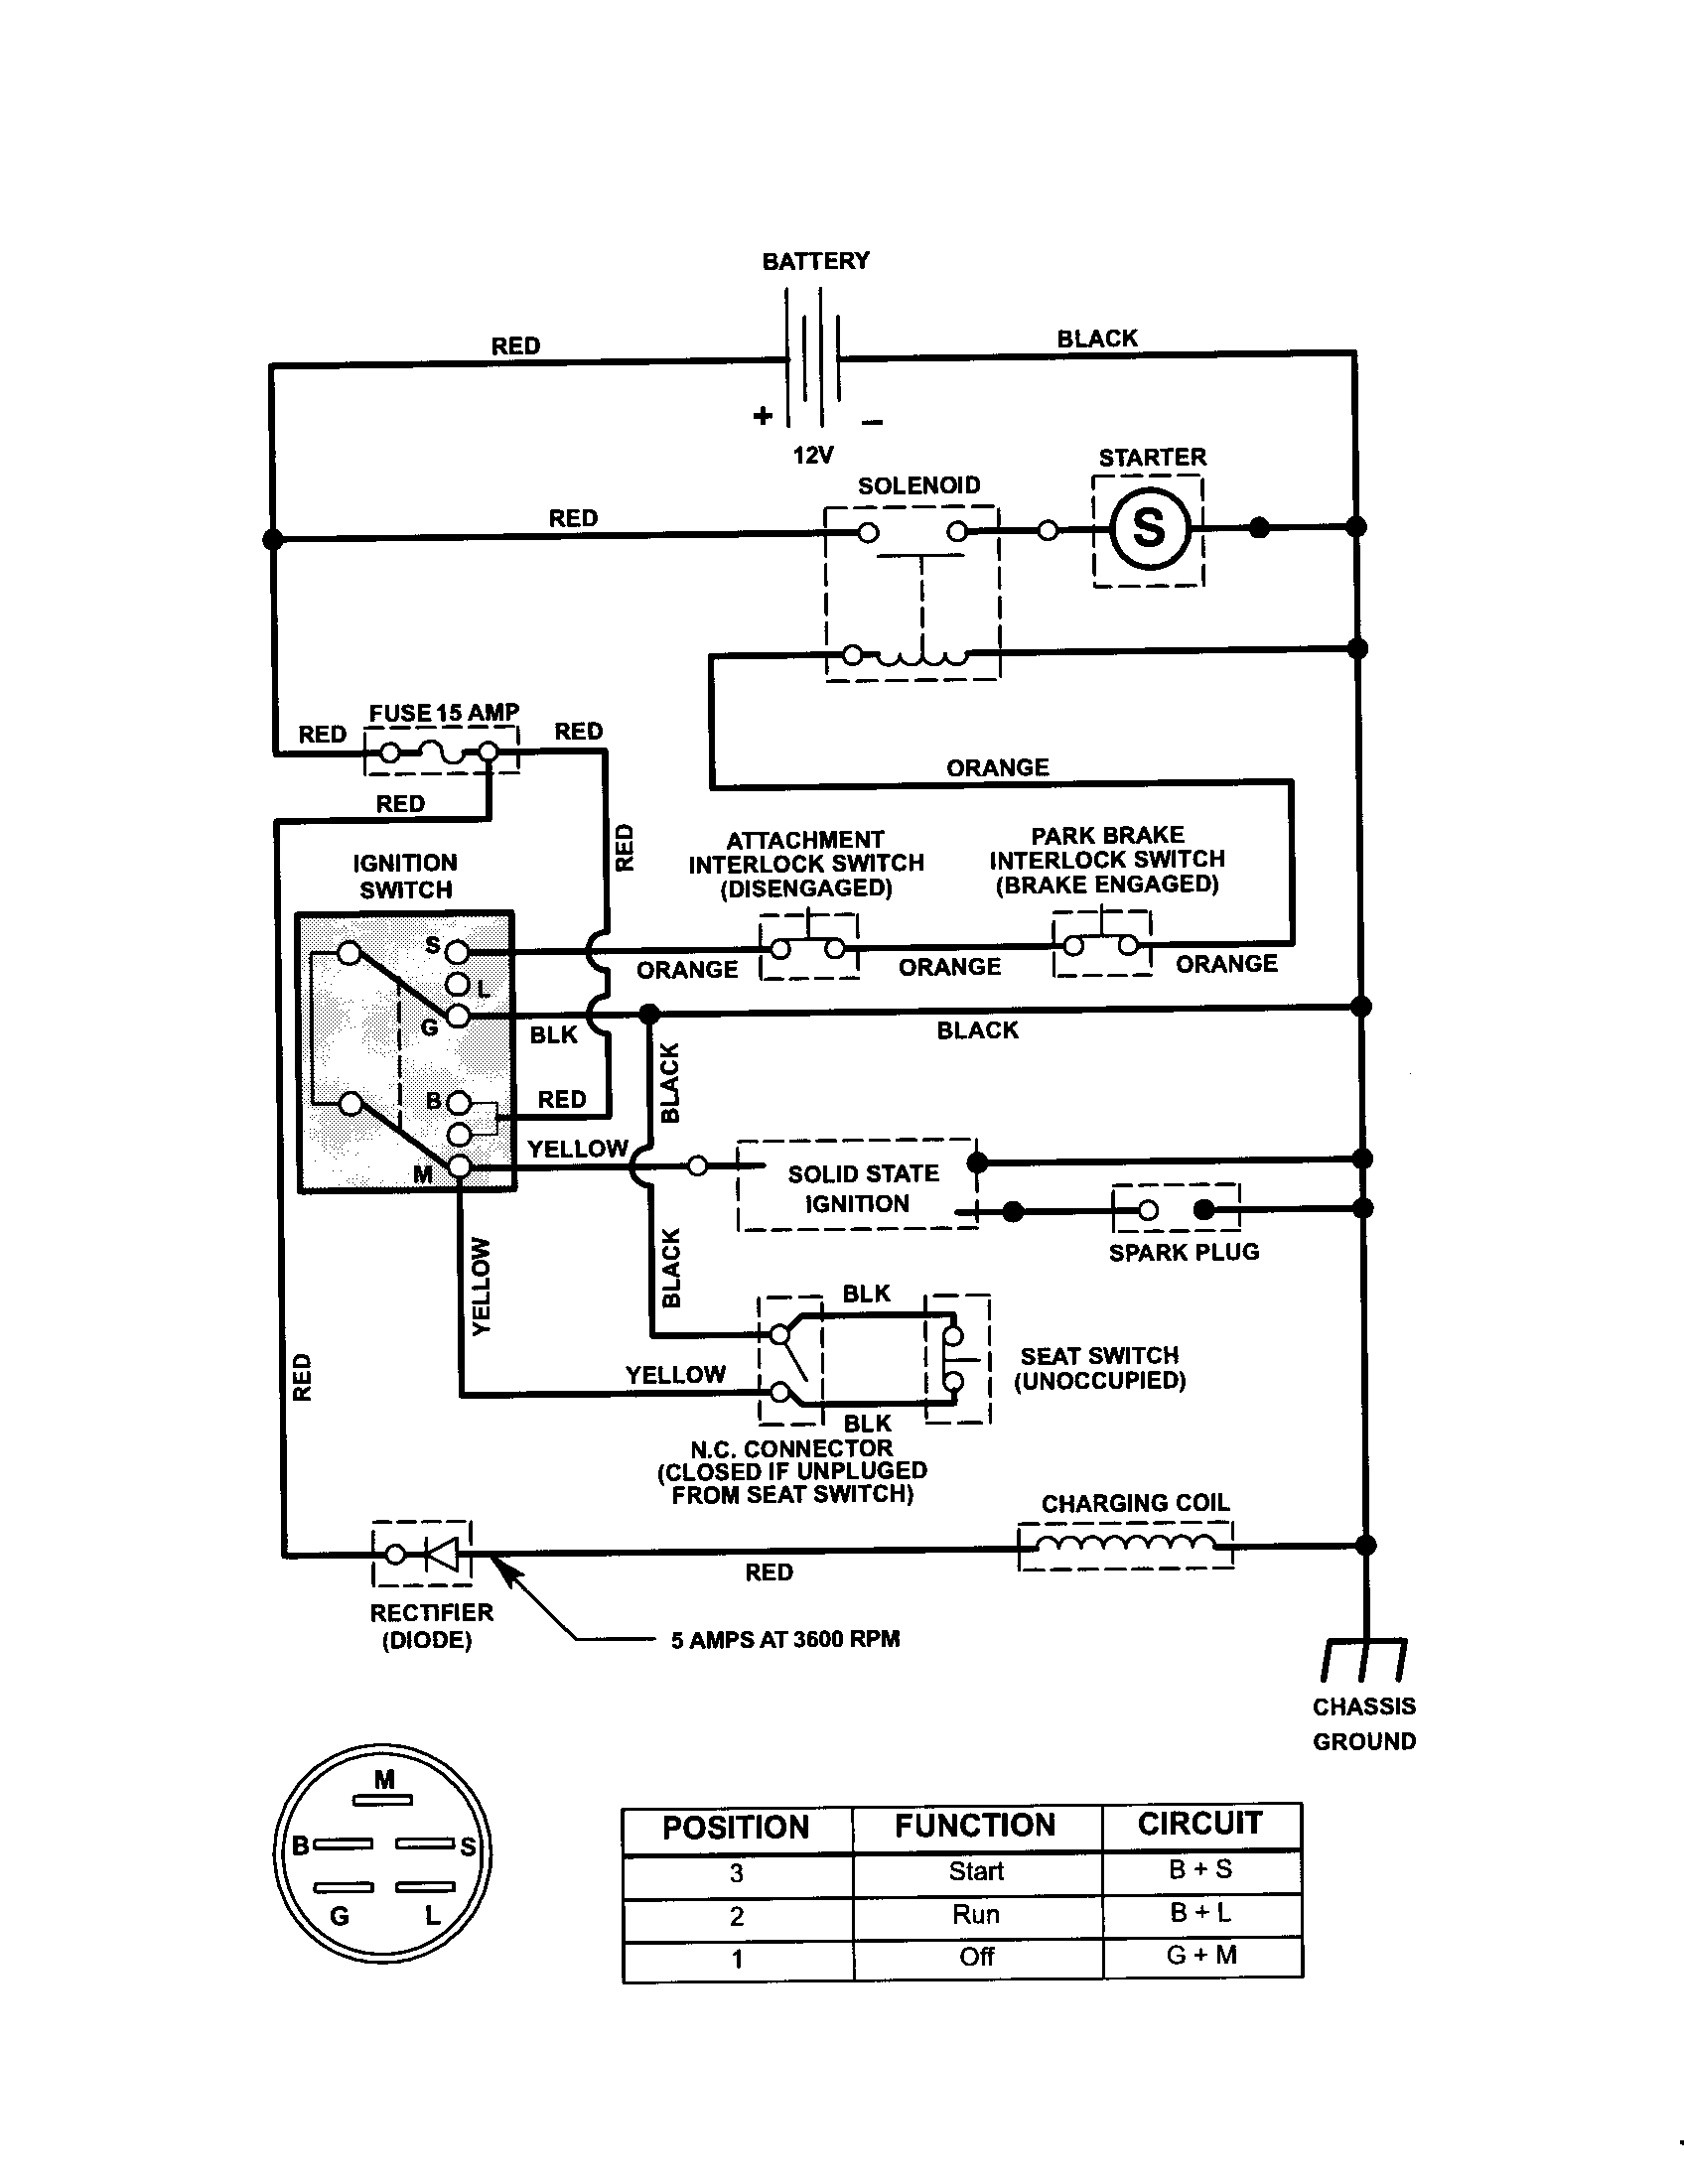 1b4fc64e2bcb7b381848942ff5c84dce craftsman riding mower electrical diagram pictures of craftsman wiring harness for craftsman riding mower at bayanpartner.co